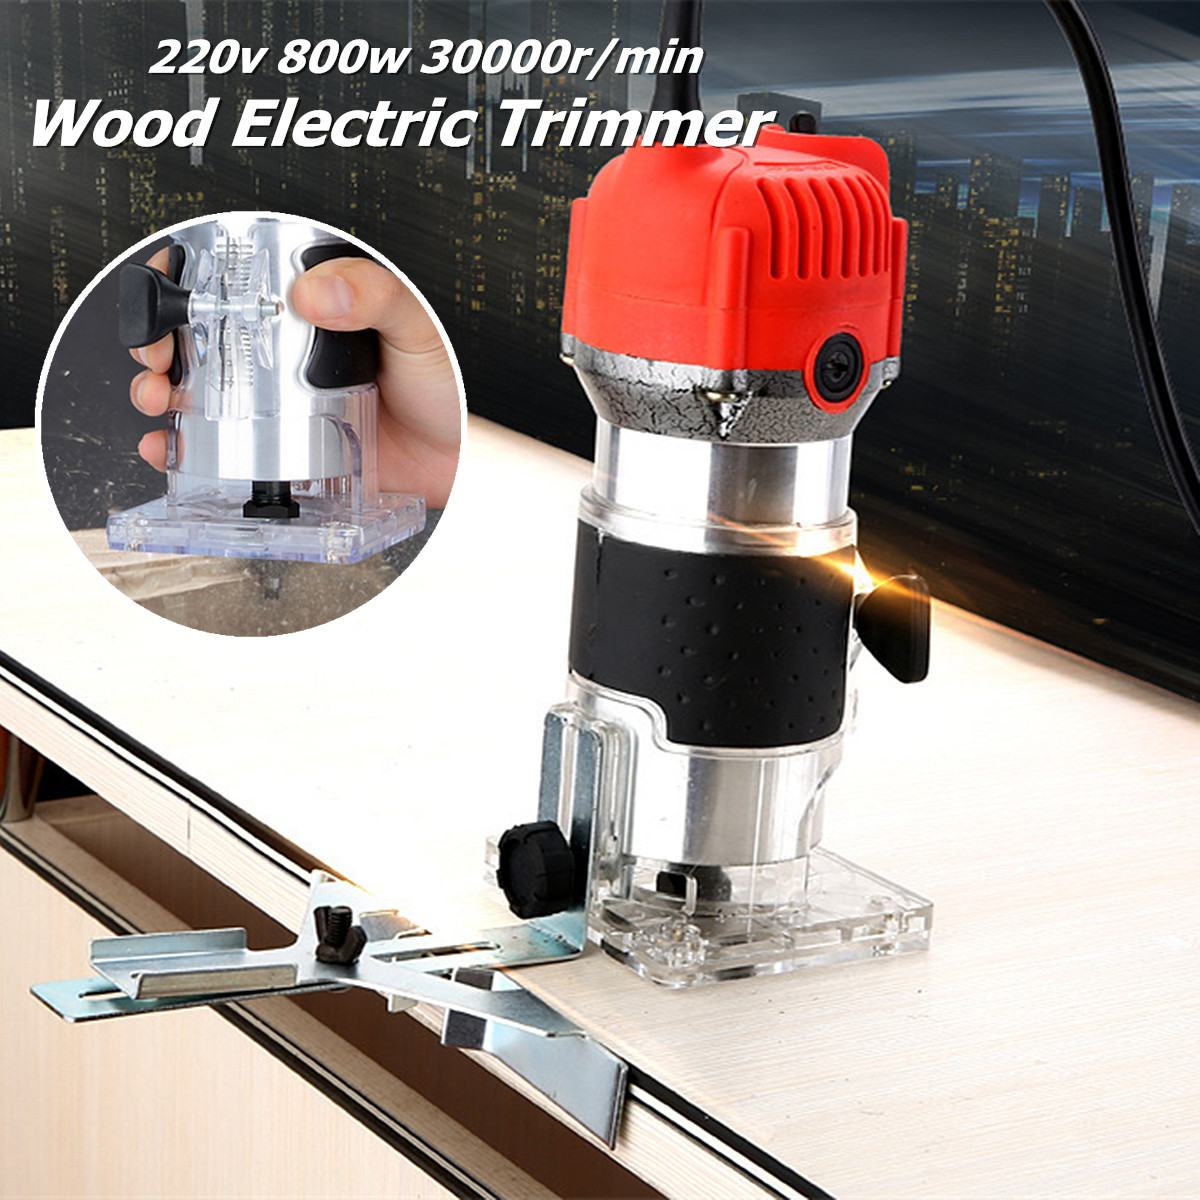 Drillpro 30000rpm Woodworking Electric Trimmer Wood Milling Engraving Tool 800W Slotting Trimming Machine Wood Router Slotting